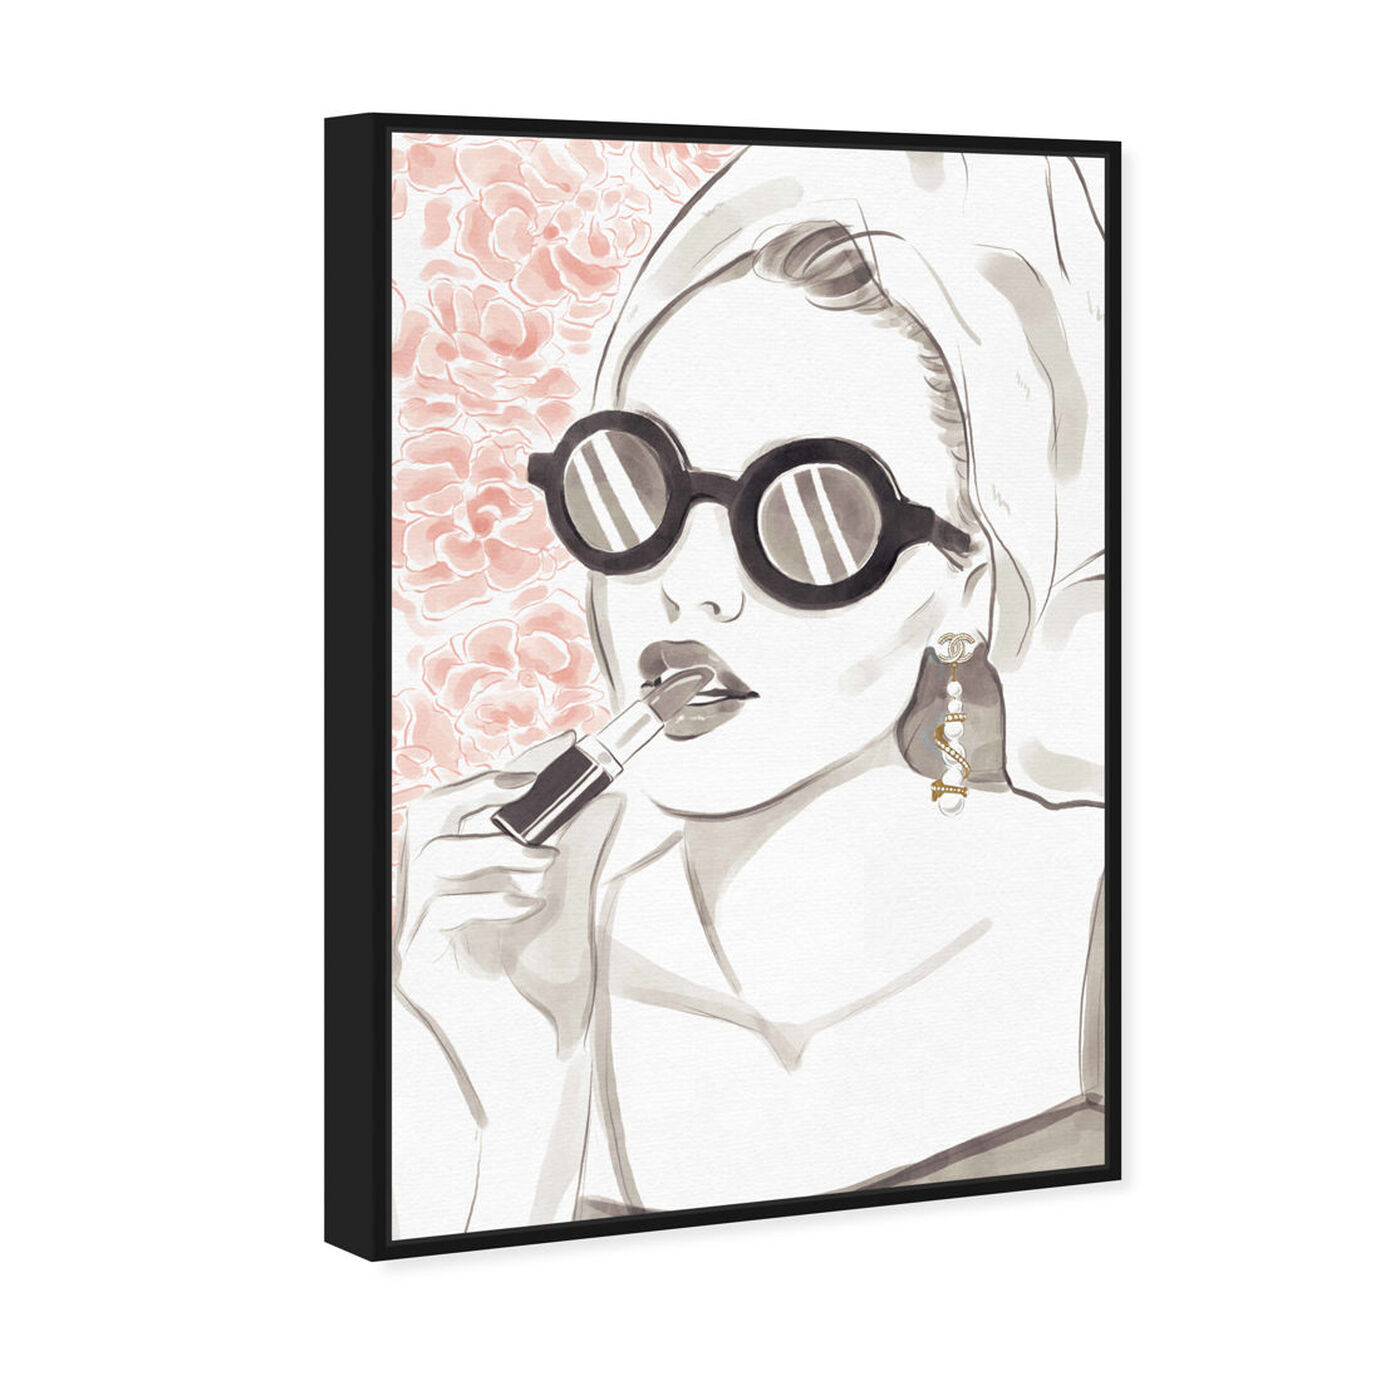 Angled view of Sunglasses Bomb Beauty featuring fashion and glam and portraits art.